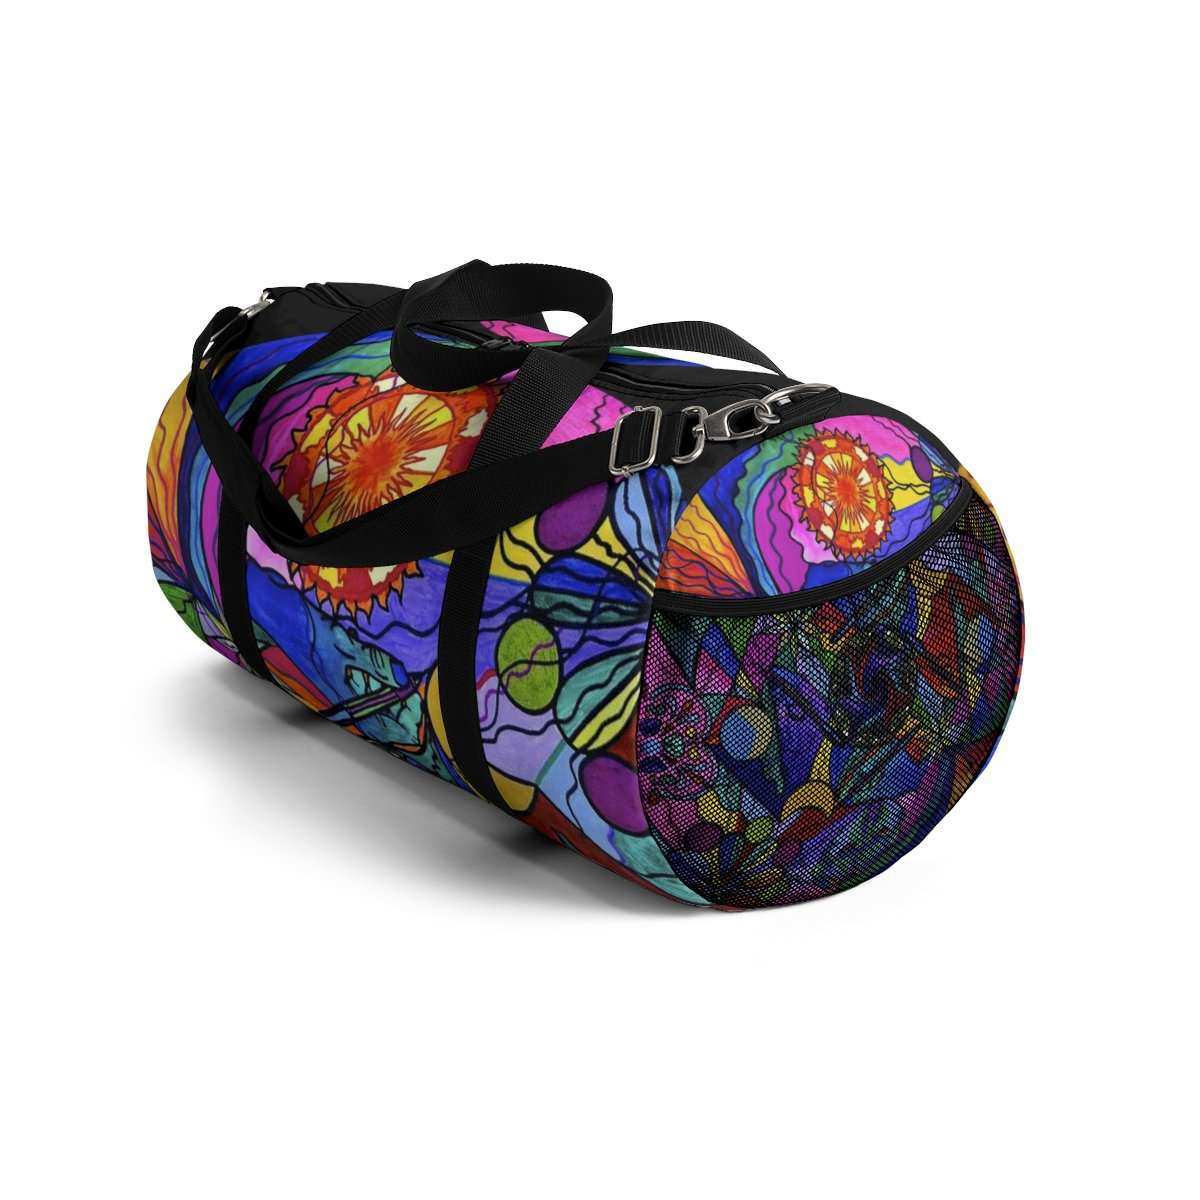 Awakened Poet - Duffle Bag